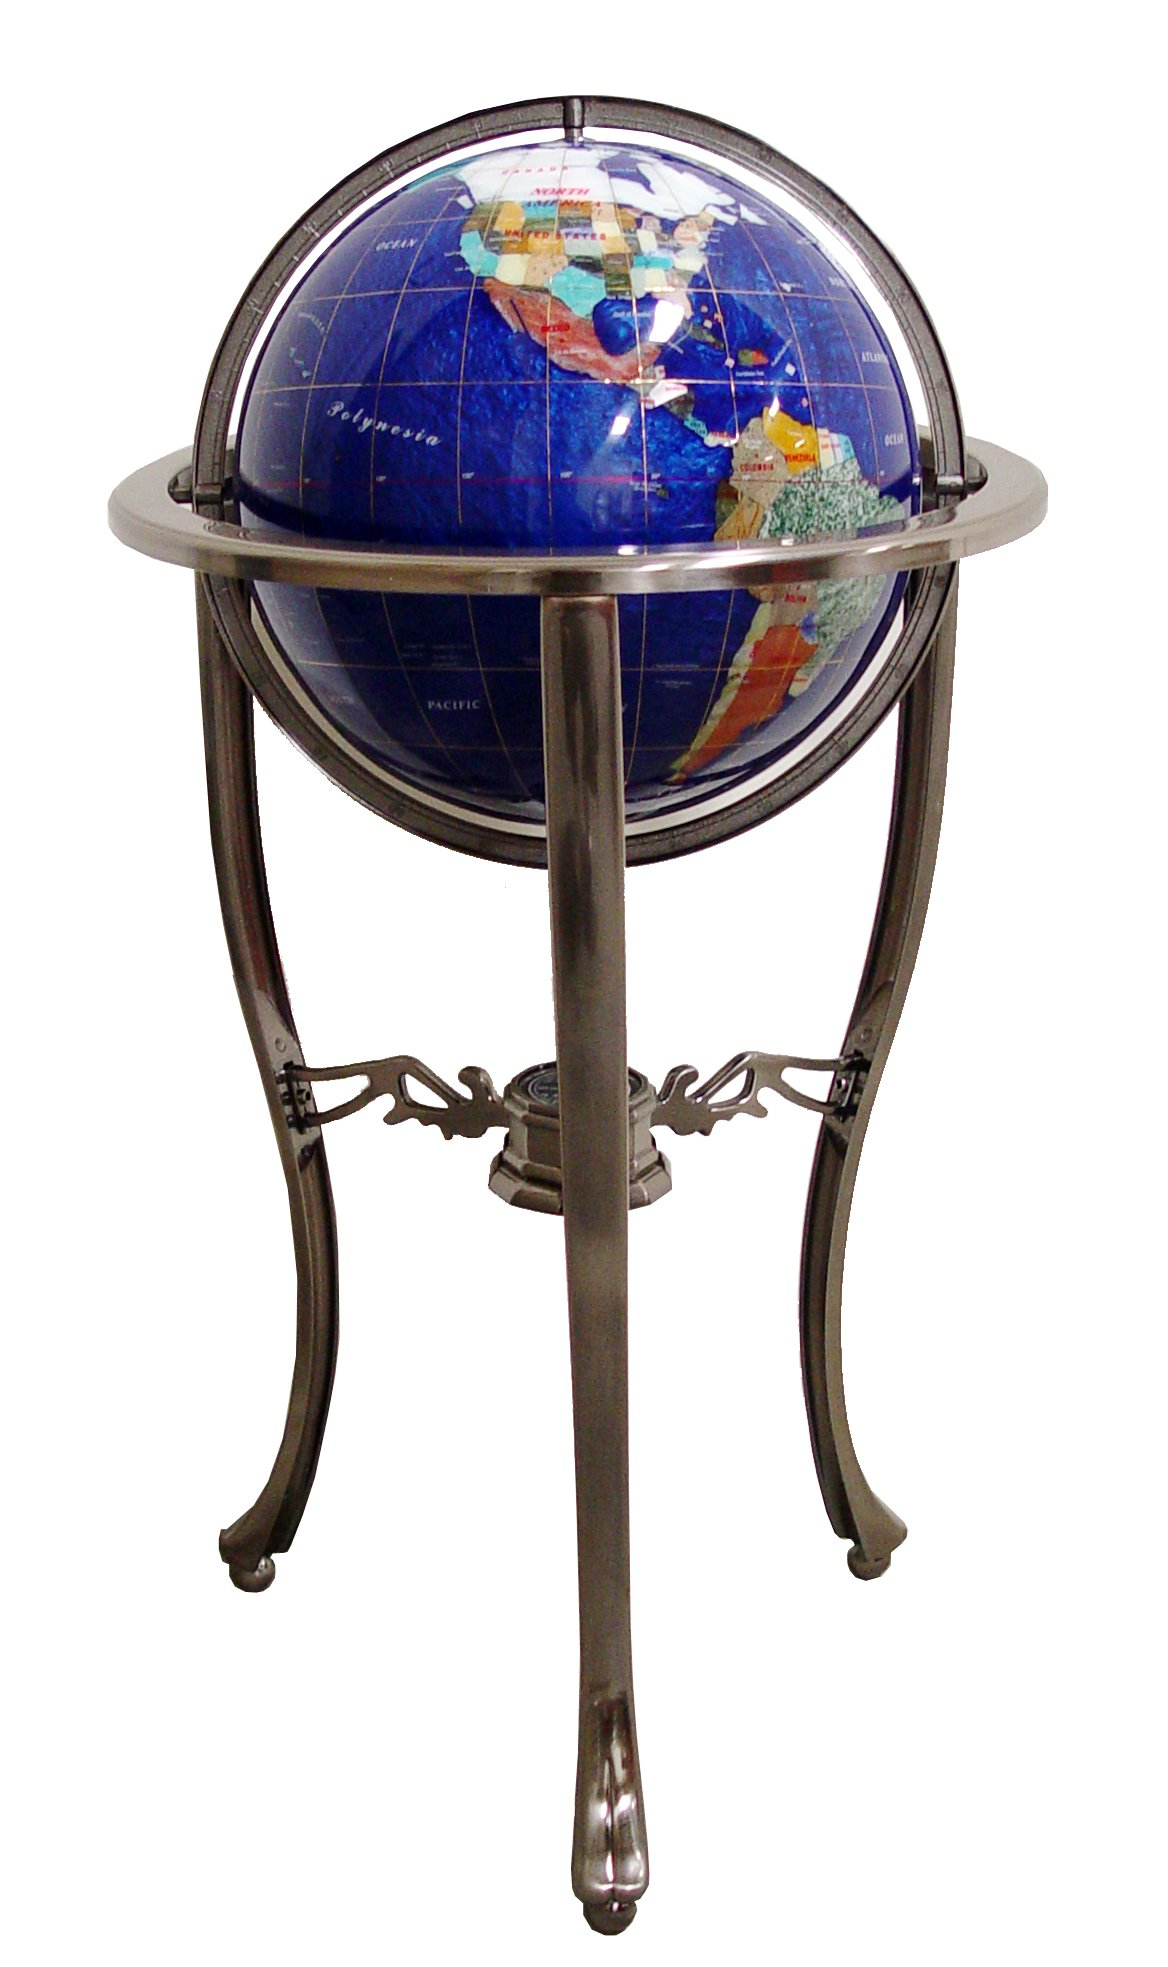 Unique Art Since 1996 Brand 37'' Tall Bahama Blue Pearl Swirl Ocean Floor Standing Gemstone World Globe with Tripod Silver Stand and 50 US State Stones